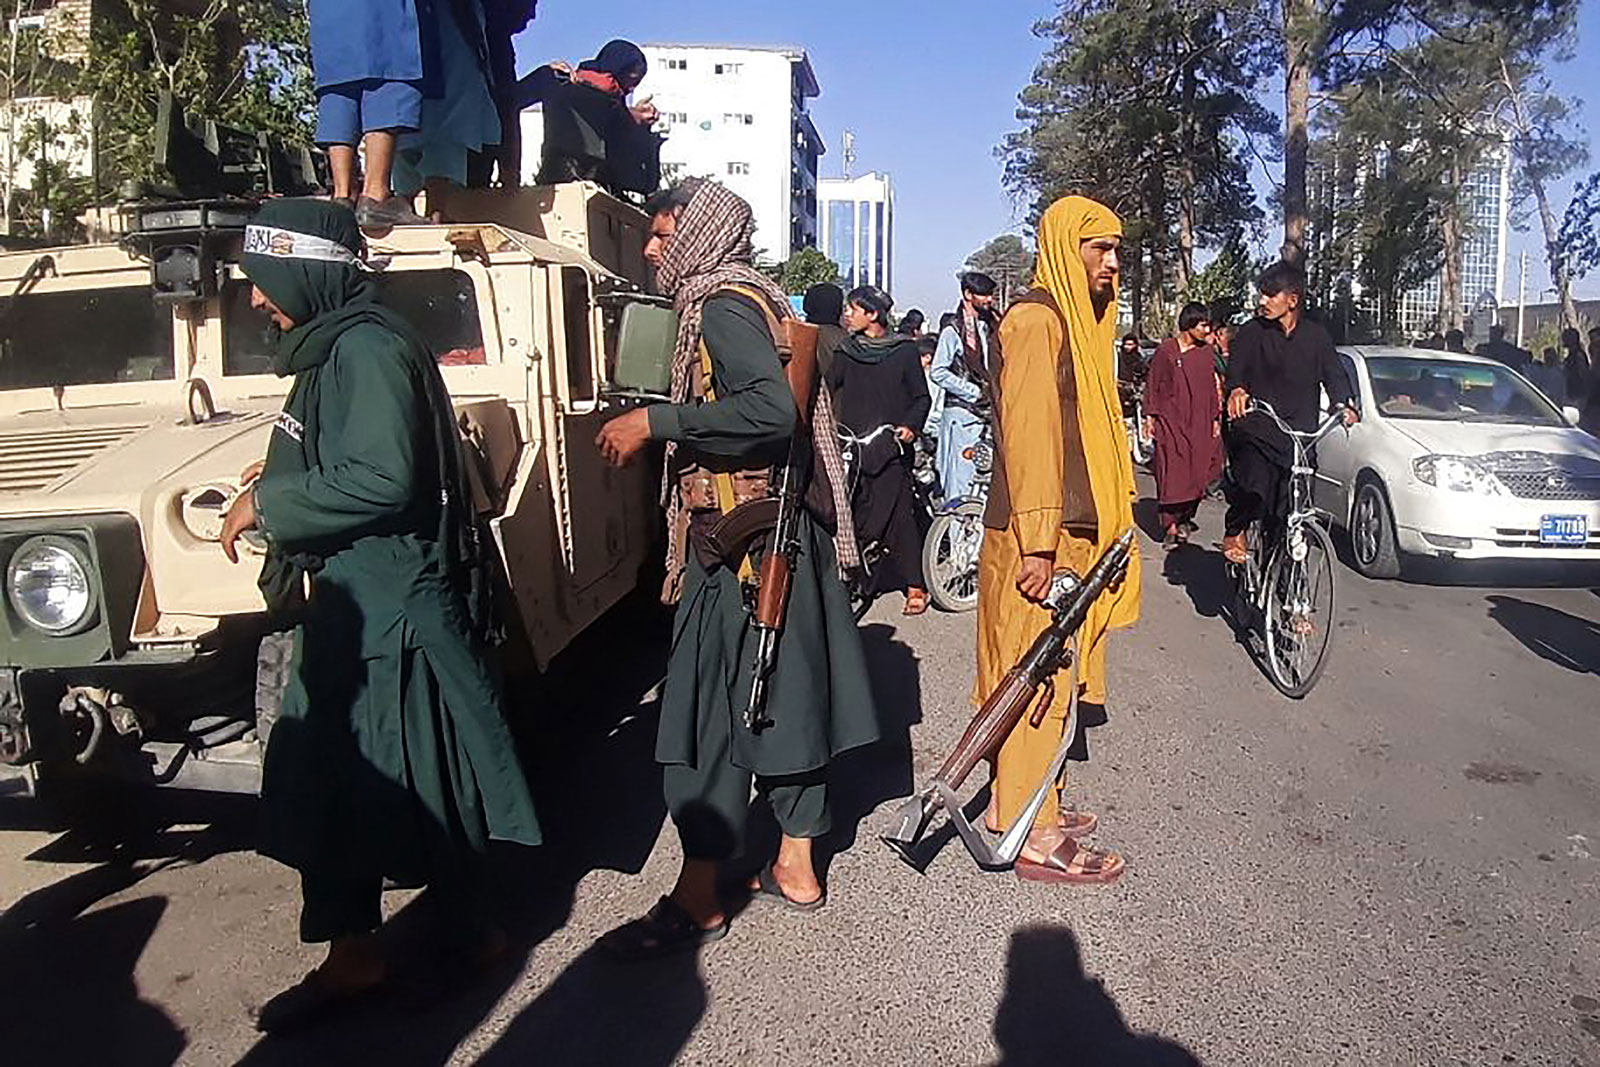 Taliban fighters stand guard along the road in Herat, Afghanistan on August 13.